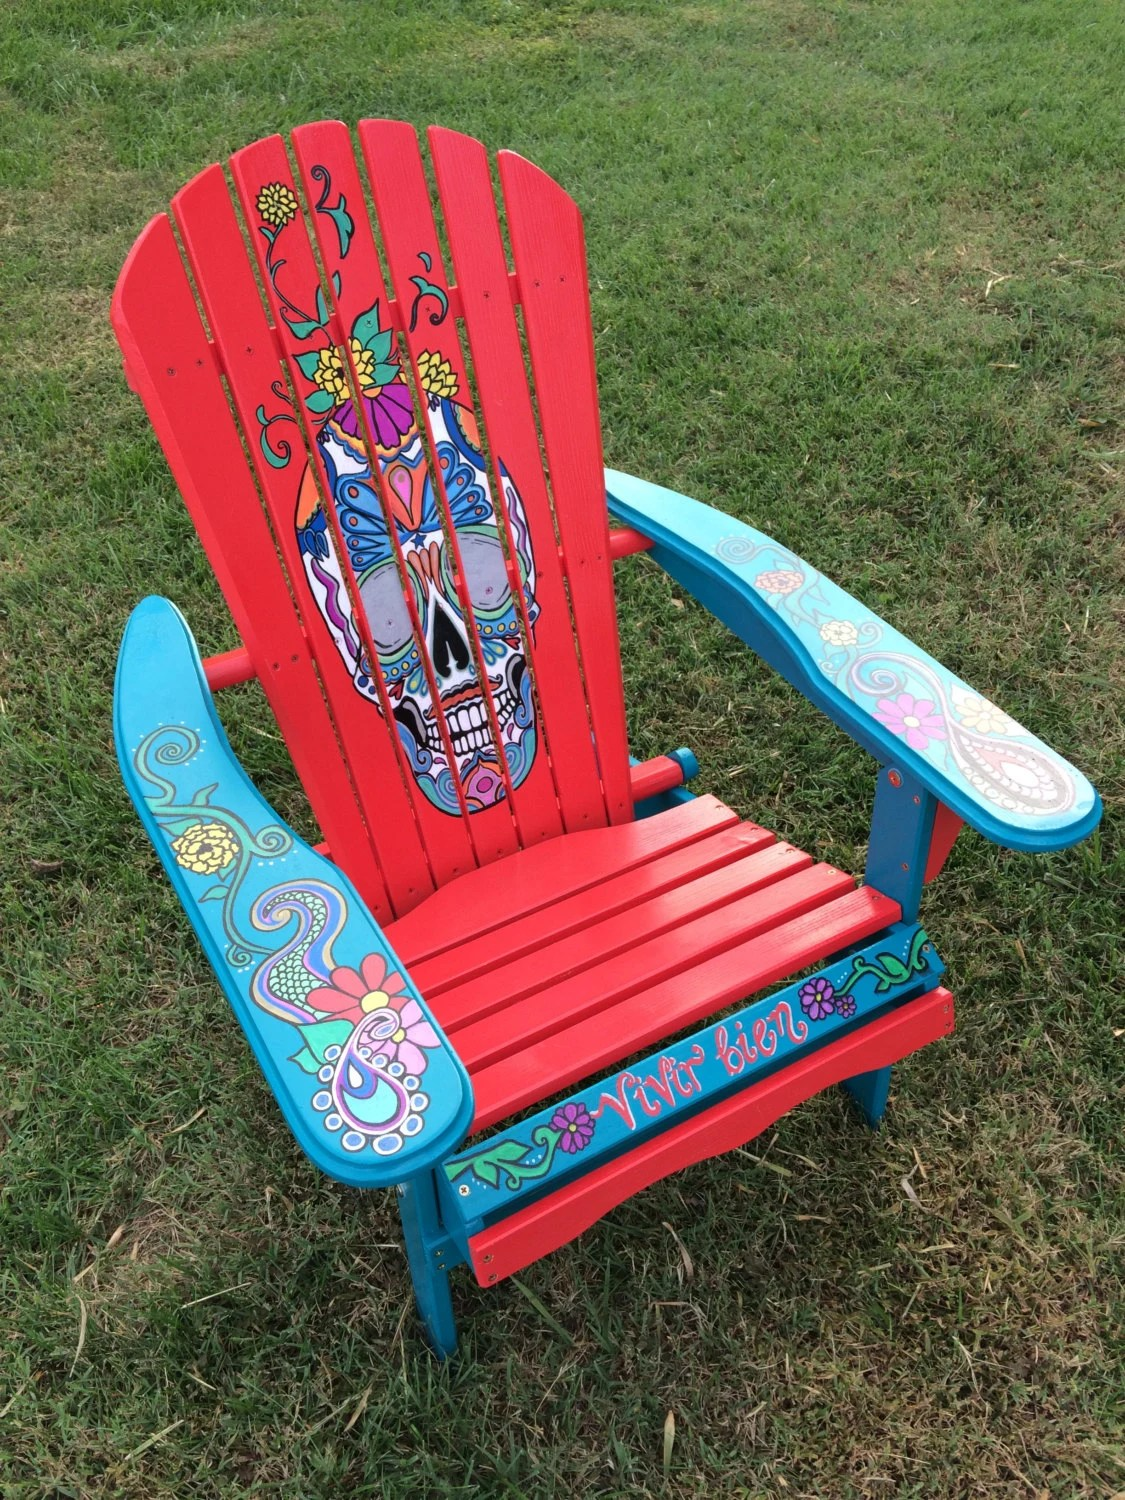 Teal Adirondack Chairs Hand Painted Red Sugar Skull Adirondack Chair Unique Gift